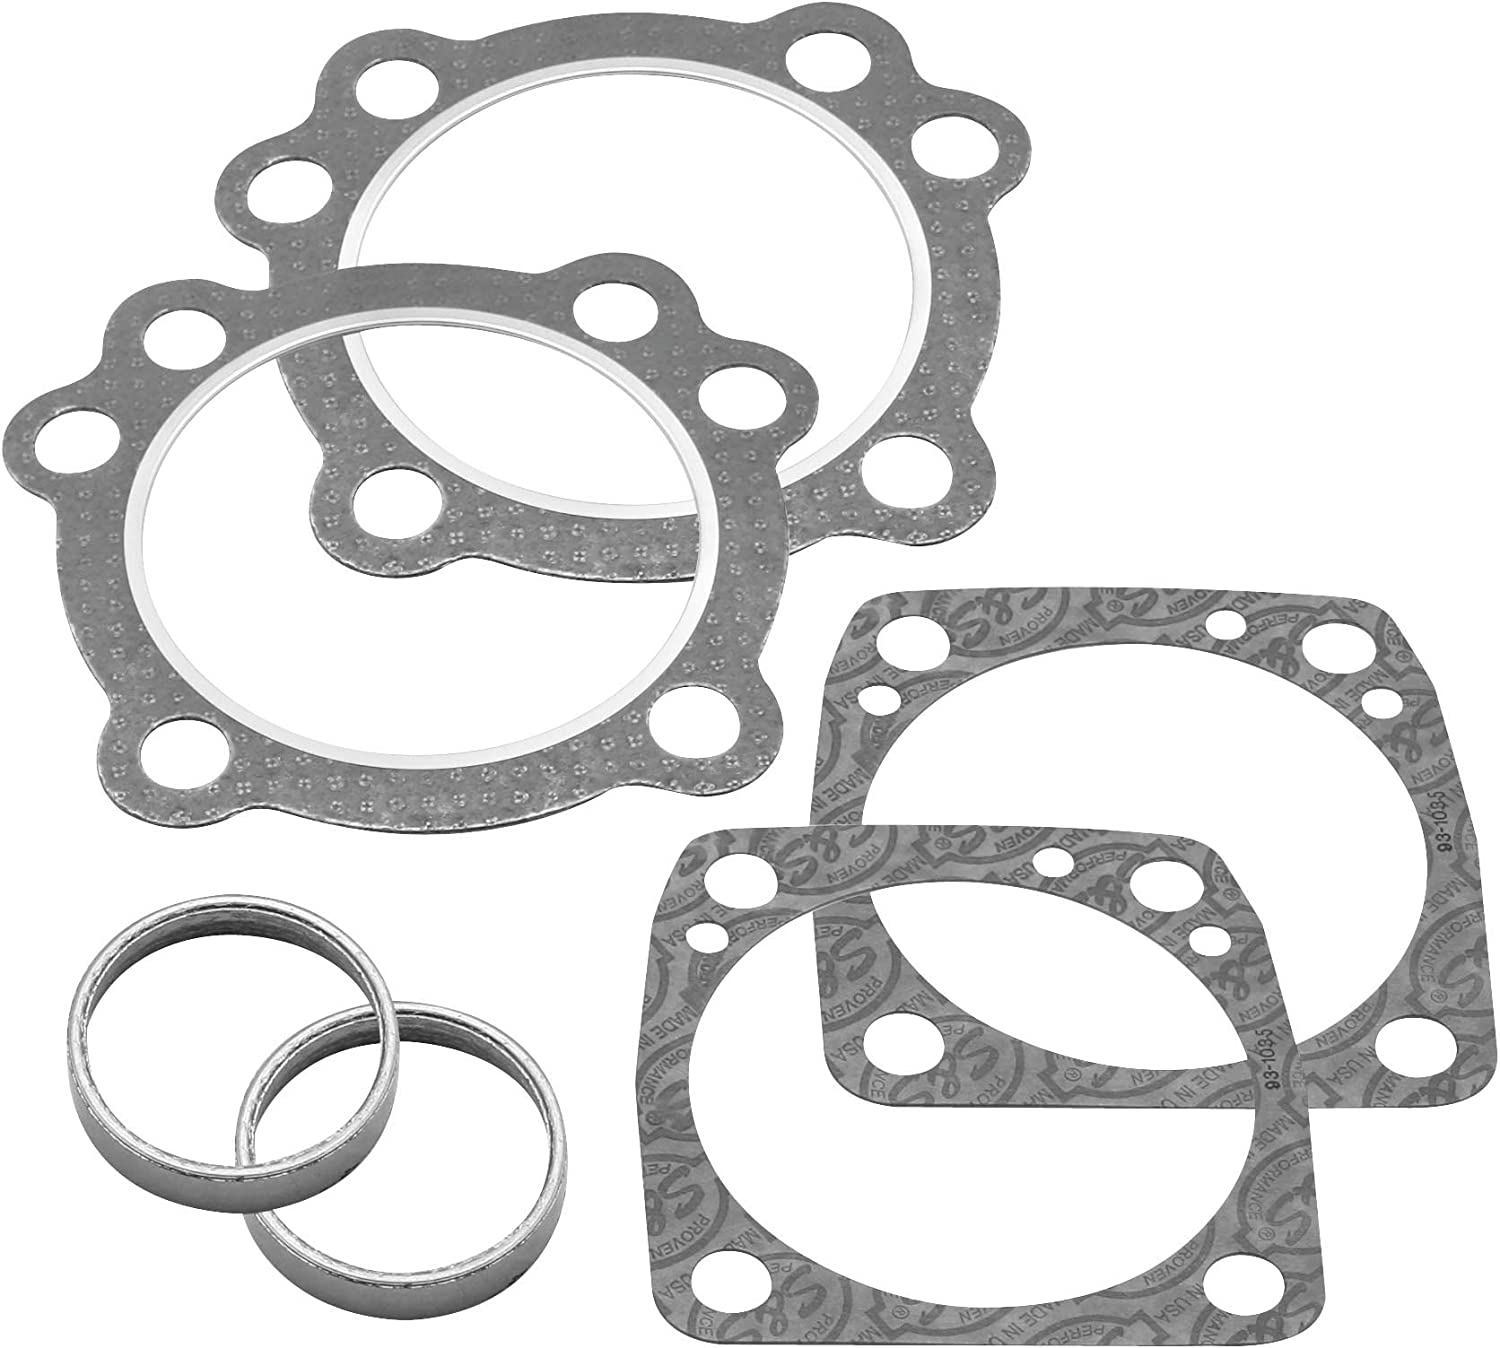 S/&S Cycle Head Installation Gasket Kit for Super Stock Cylinder Heads 4in Bore 90-1909